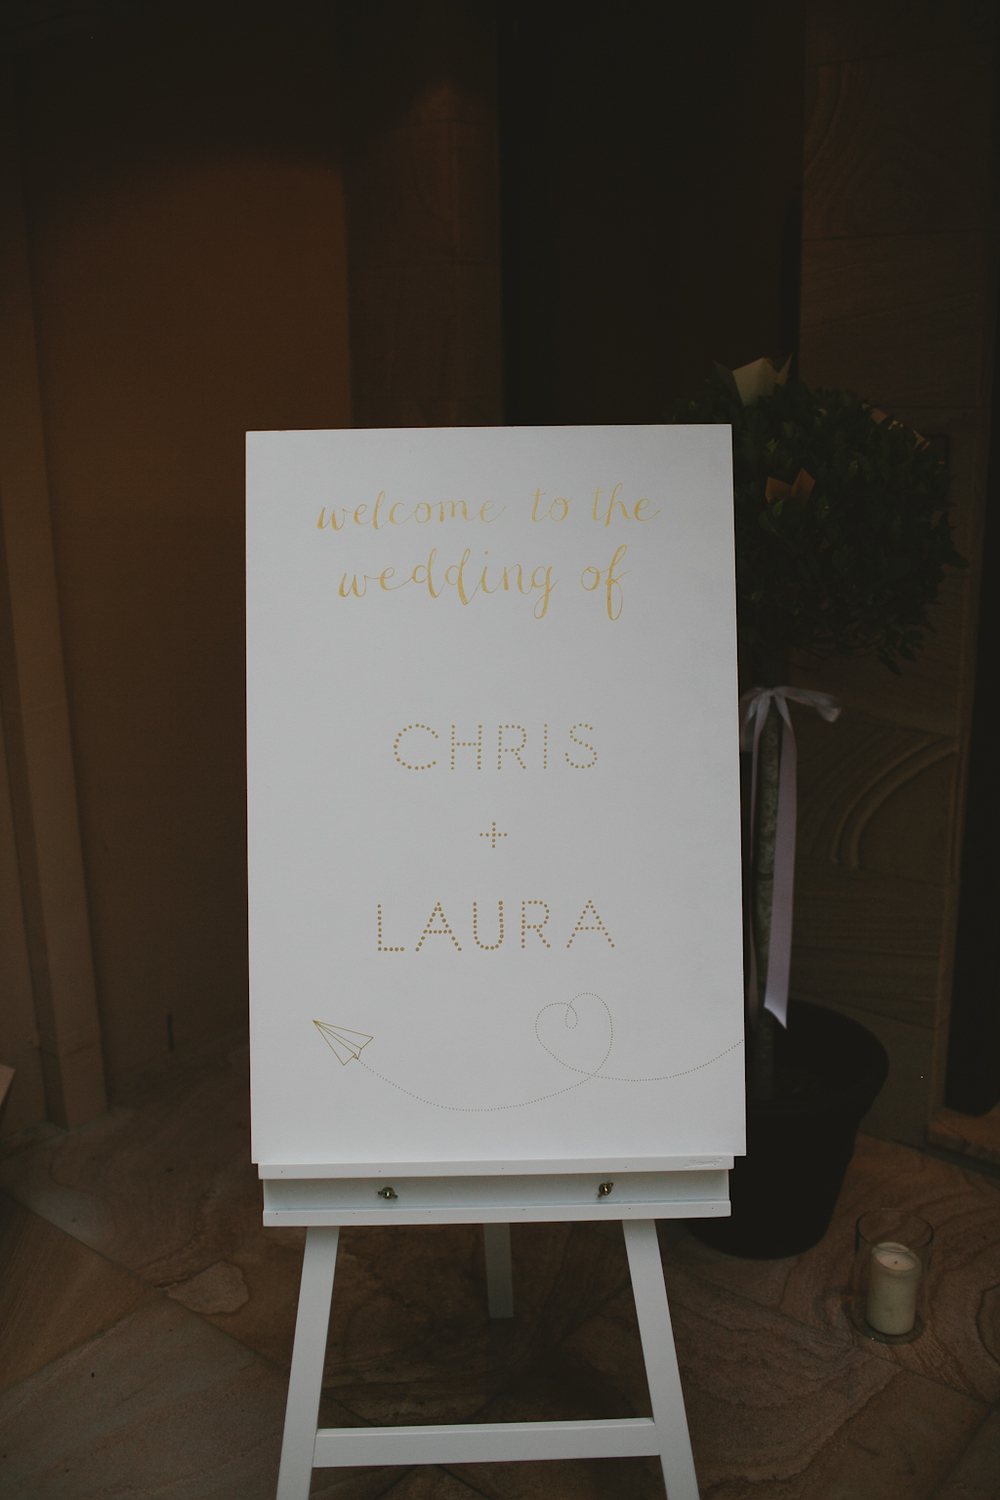 066_Laura+Chris.jpg